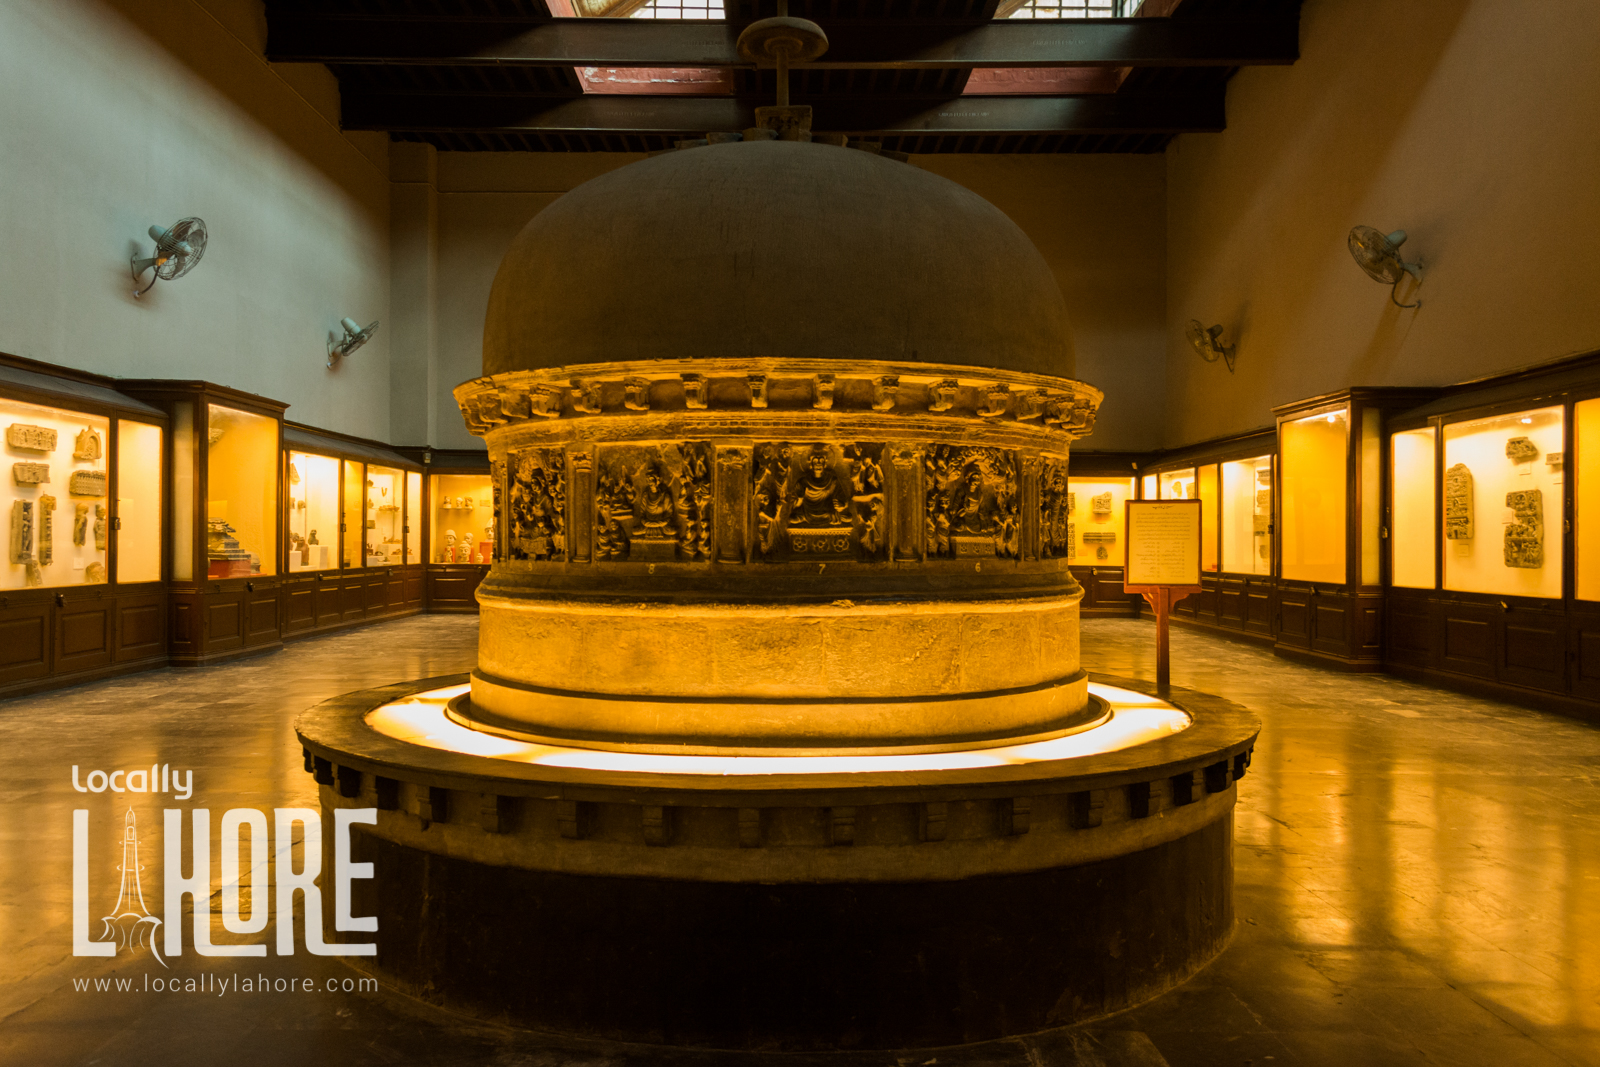 a visit to lahore museum A detailed review of lahore museum in lahore by placesonline how to get to lahore museum, opening hours, ticket sale, address and useful numbers to plan your visit to lahore museum.